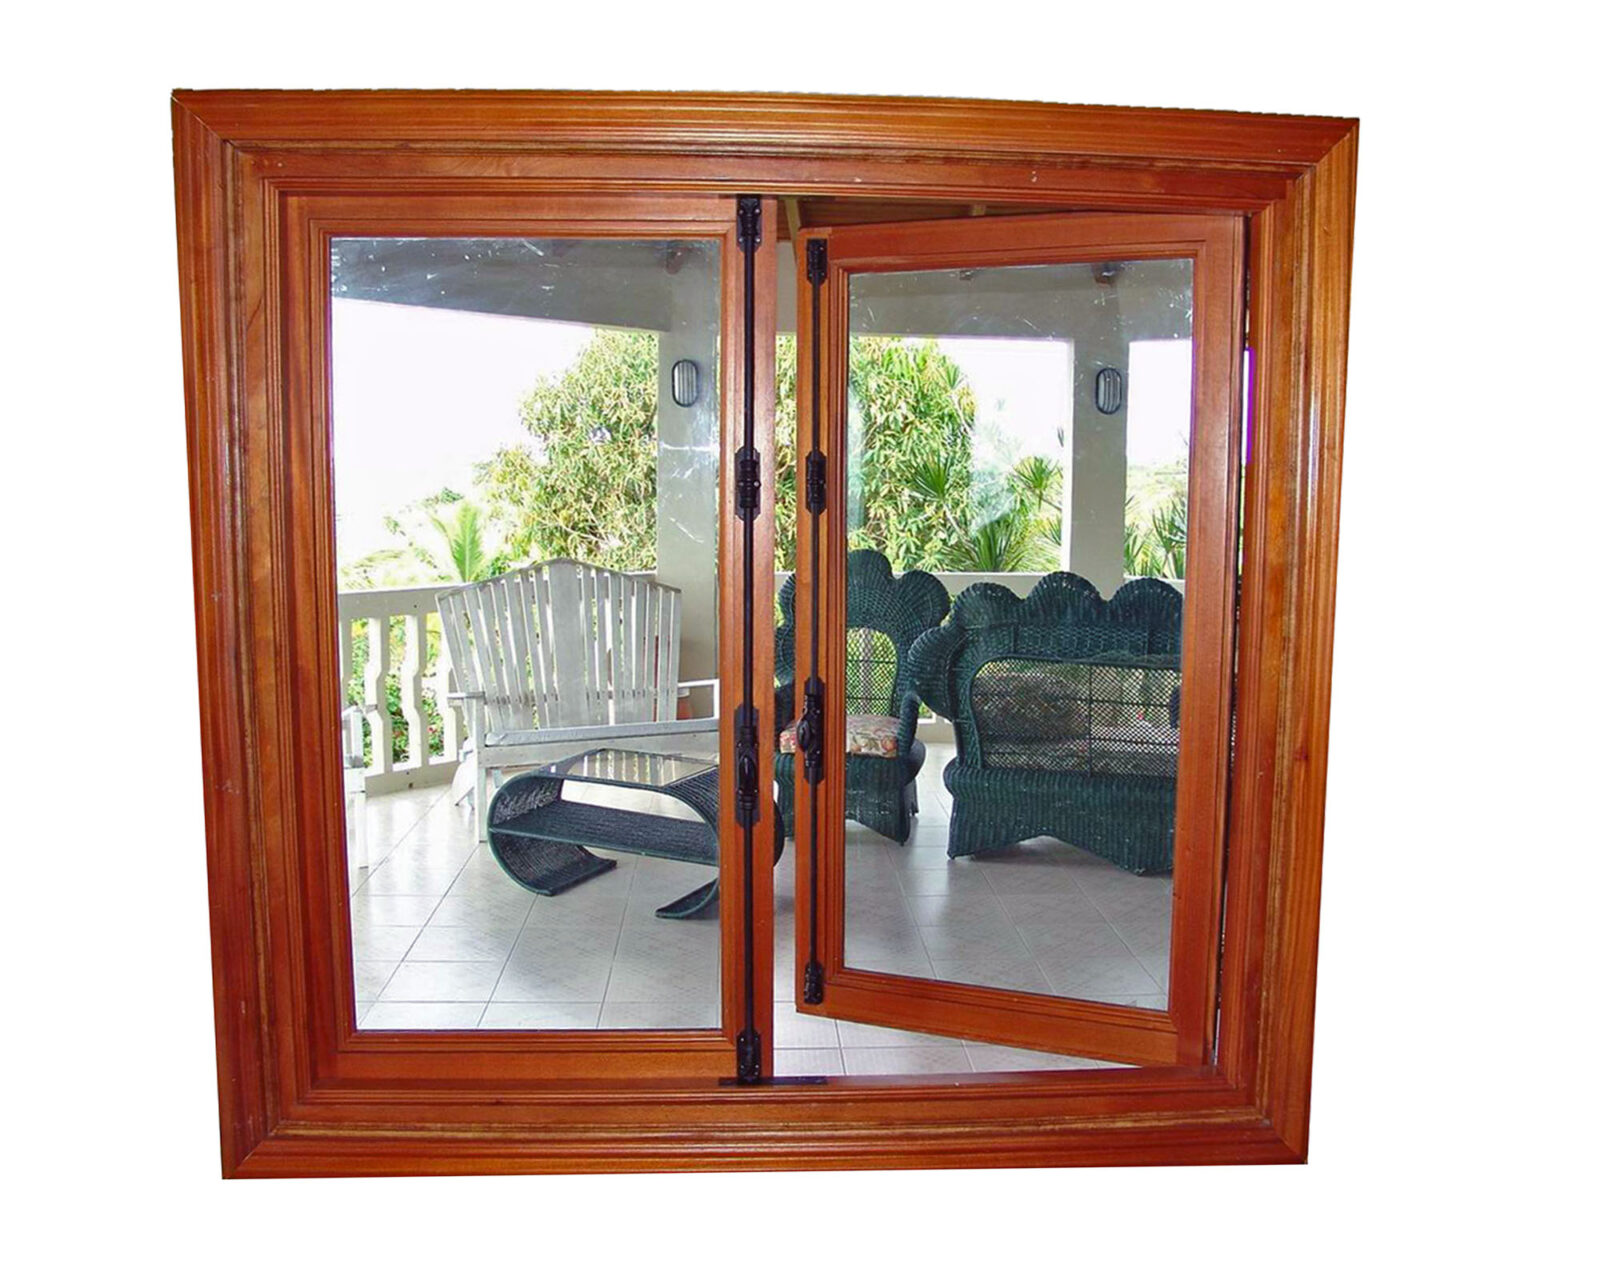 TRUJILLO TRADITIONAL MAHOGANY CASEMENT WINDOWS